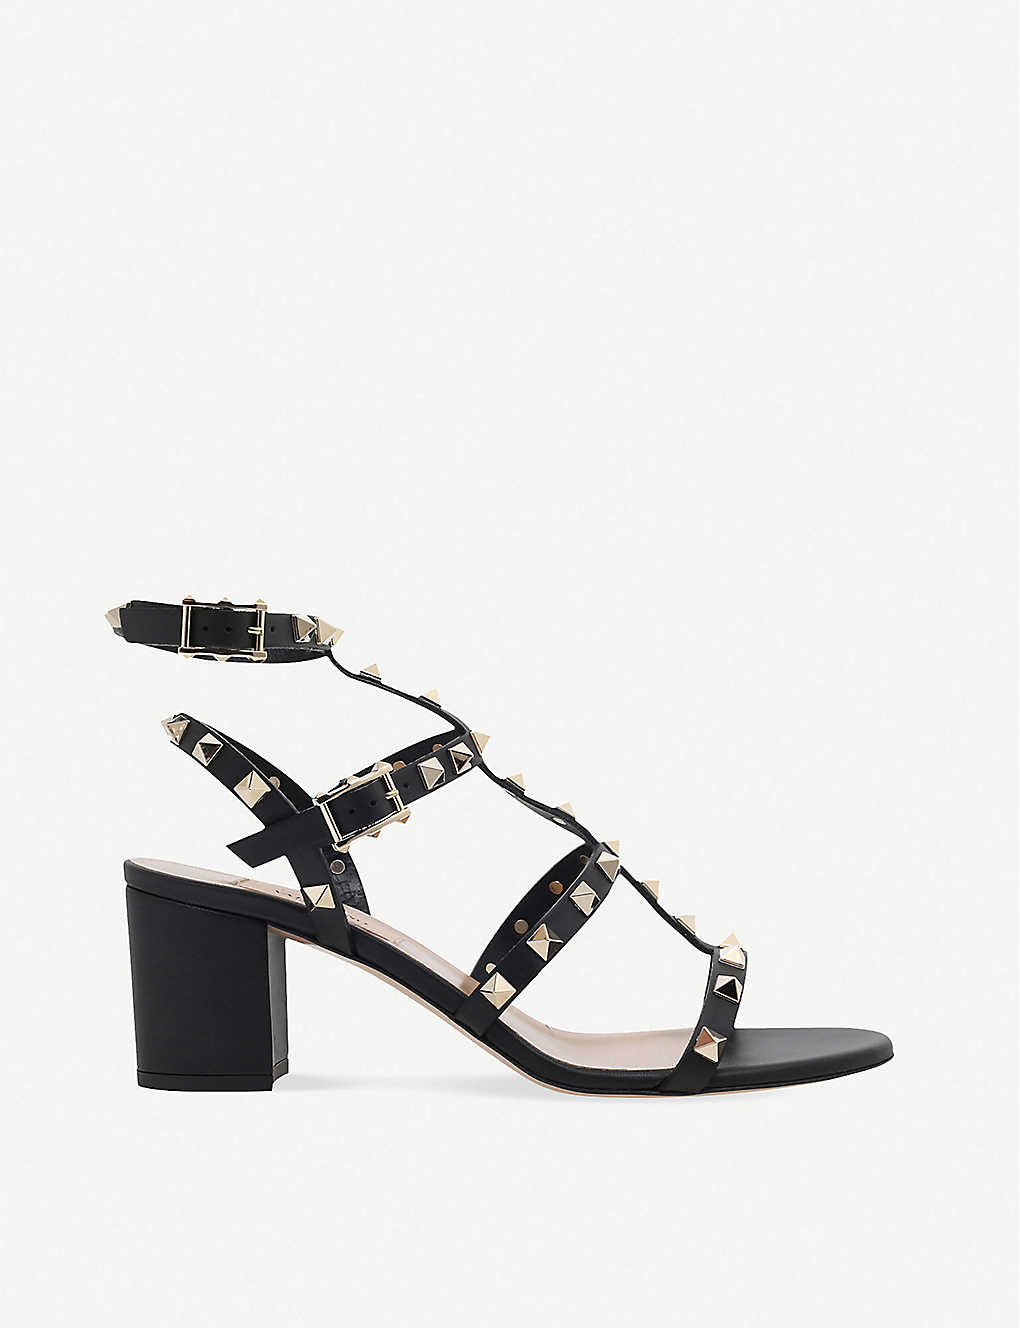 29b13a2a1382 VALENTINO - Garavani Rockstud 60 leather sandals